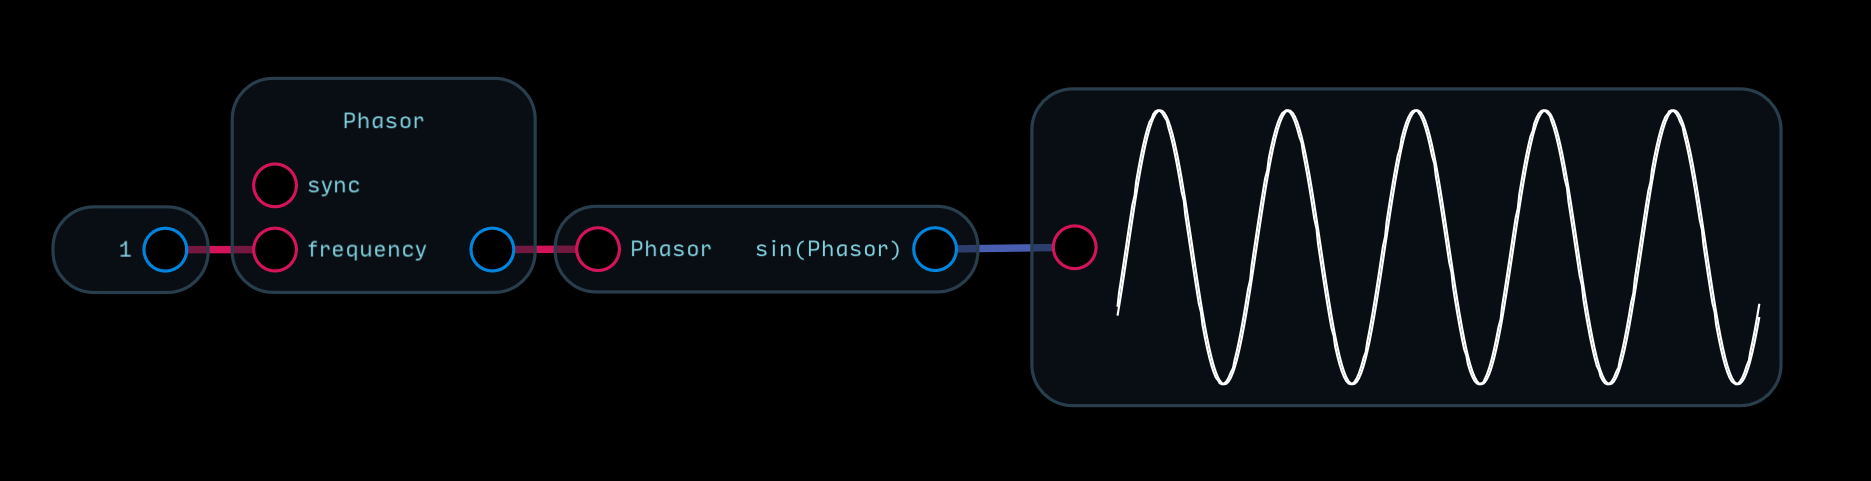 Nodes Reference Audulus To Smooth Out The Switch Bouncing Waveform An Rc Lowpass Filter Can Be A Phasor Node Used Create Multiple Waveshapes With Some Simple Math Of Course It Naturally Outputs Sawtooth Wave But How Do We Sine